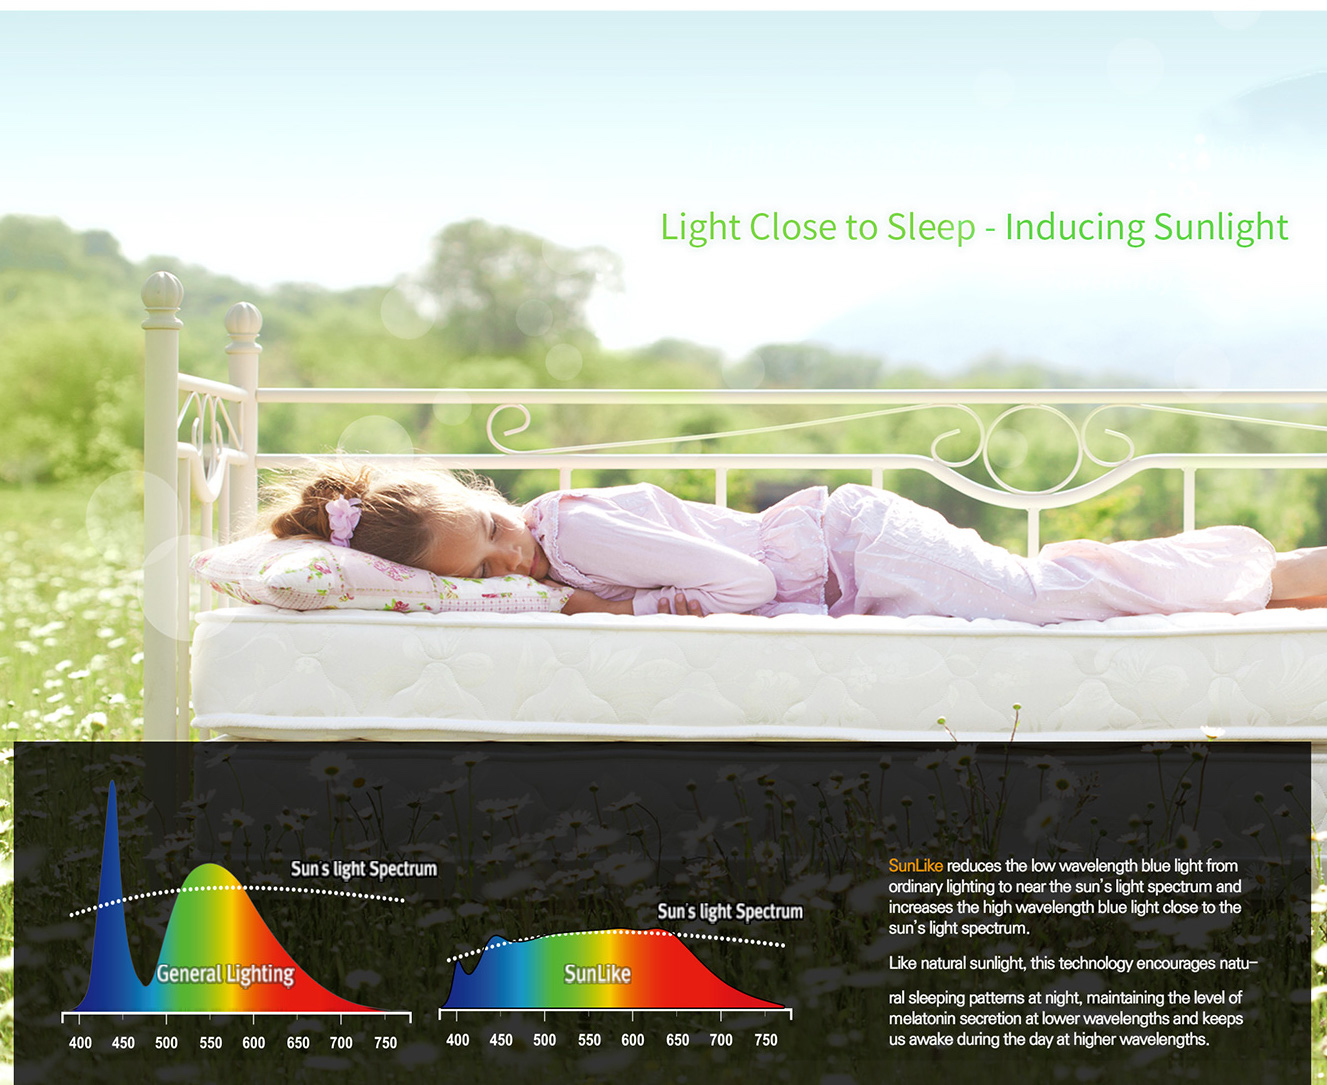 Seoul SunLike LEDs ease eye strain and improve sleep patterns, two research studies suggest